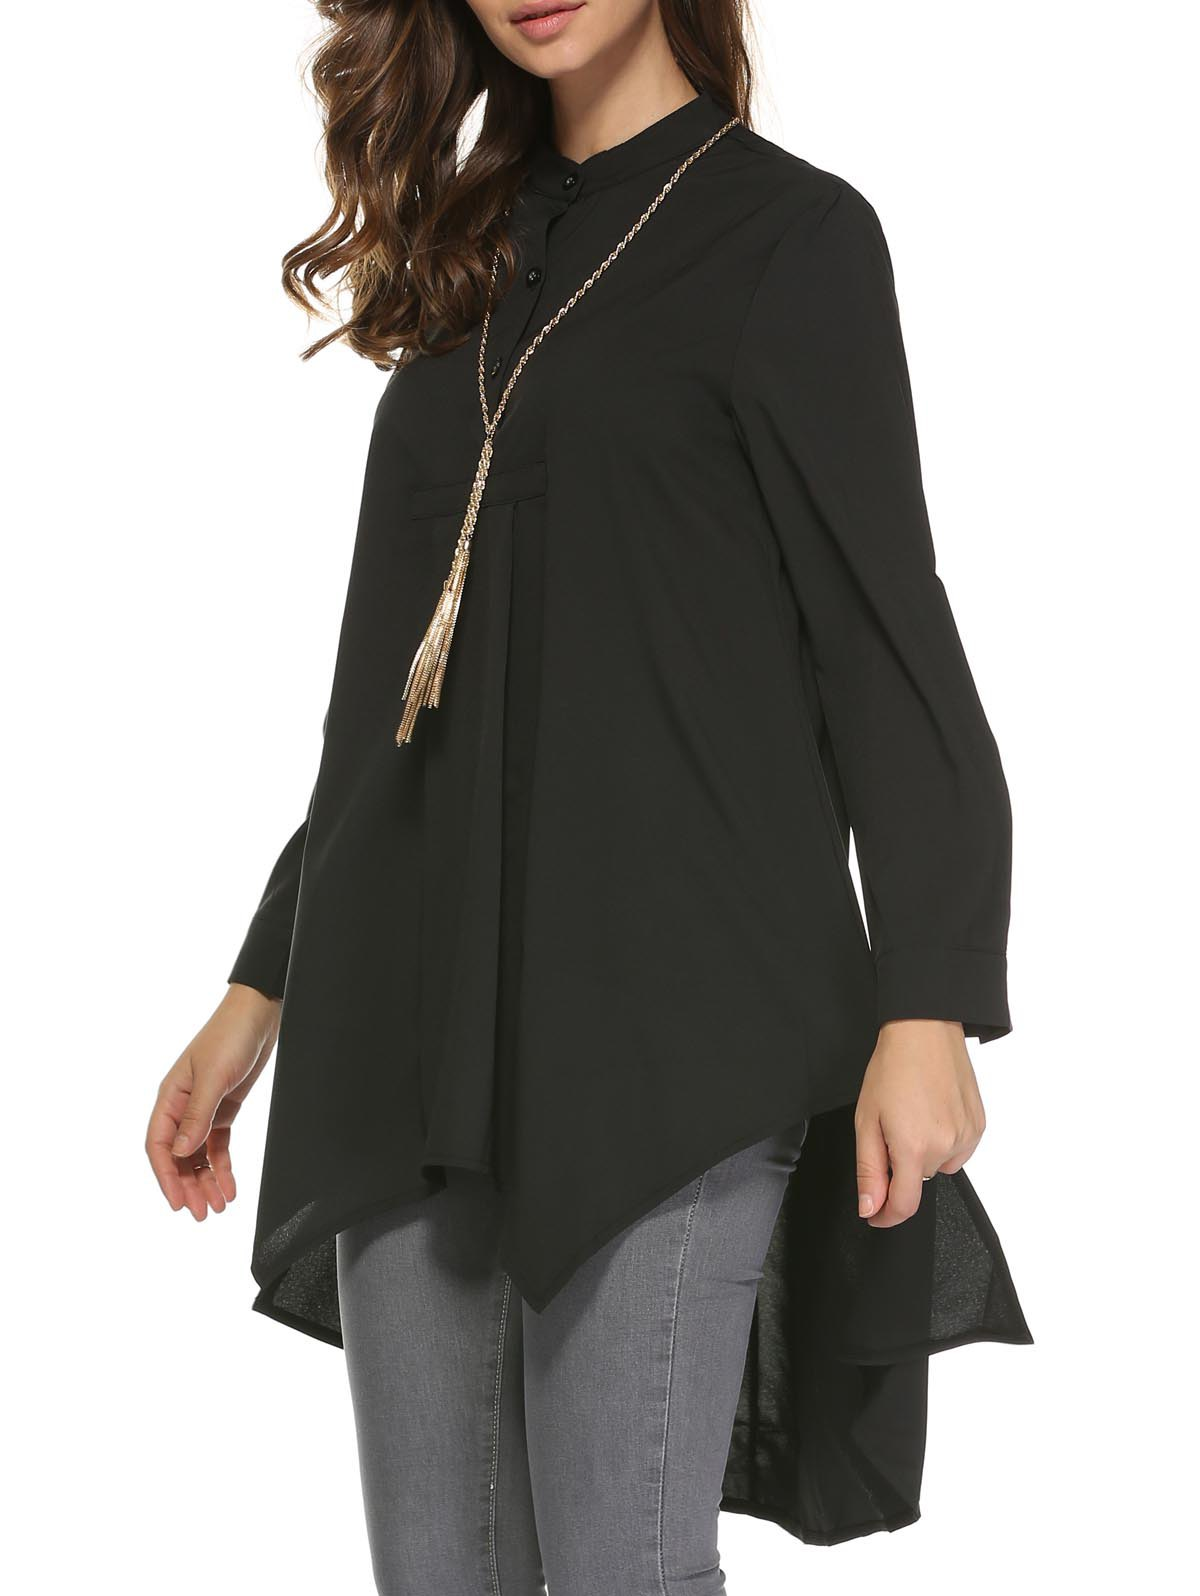 Long Sleeve Loose-Fitting High Low Blouse For Women - XL BLACK